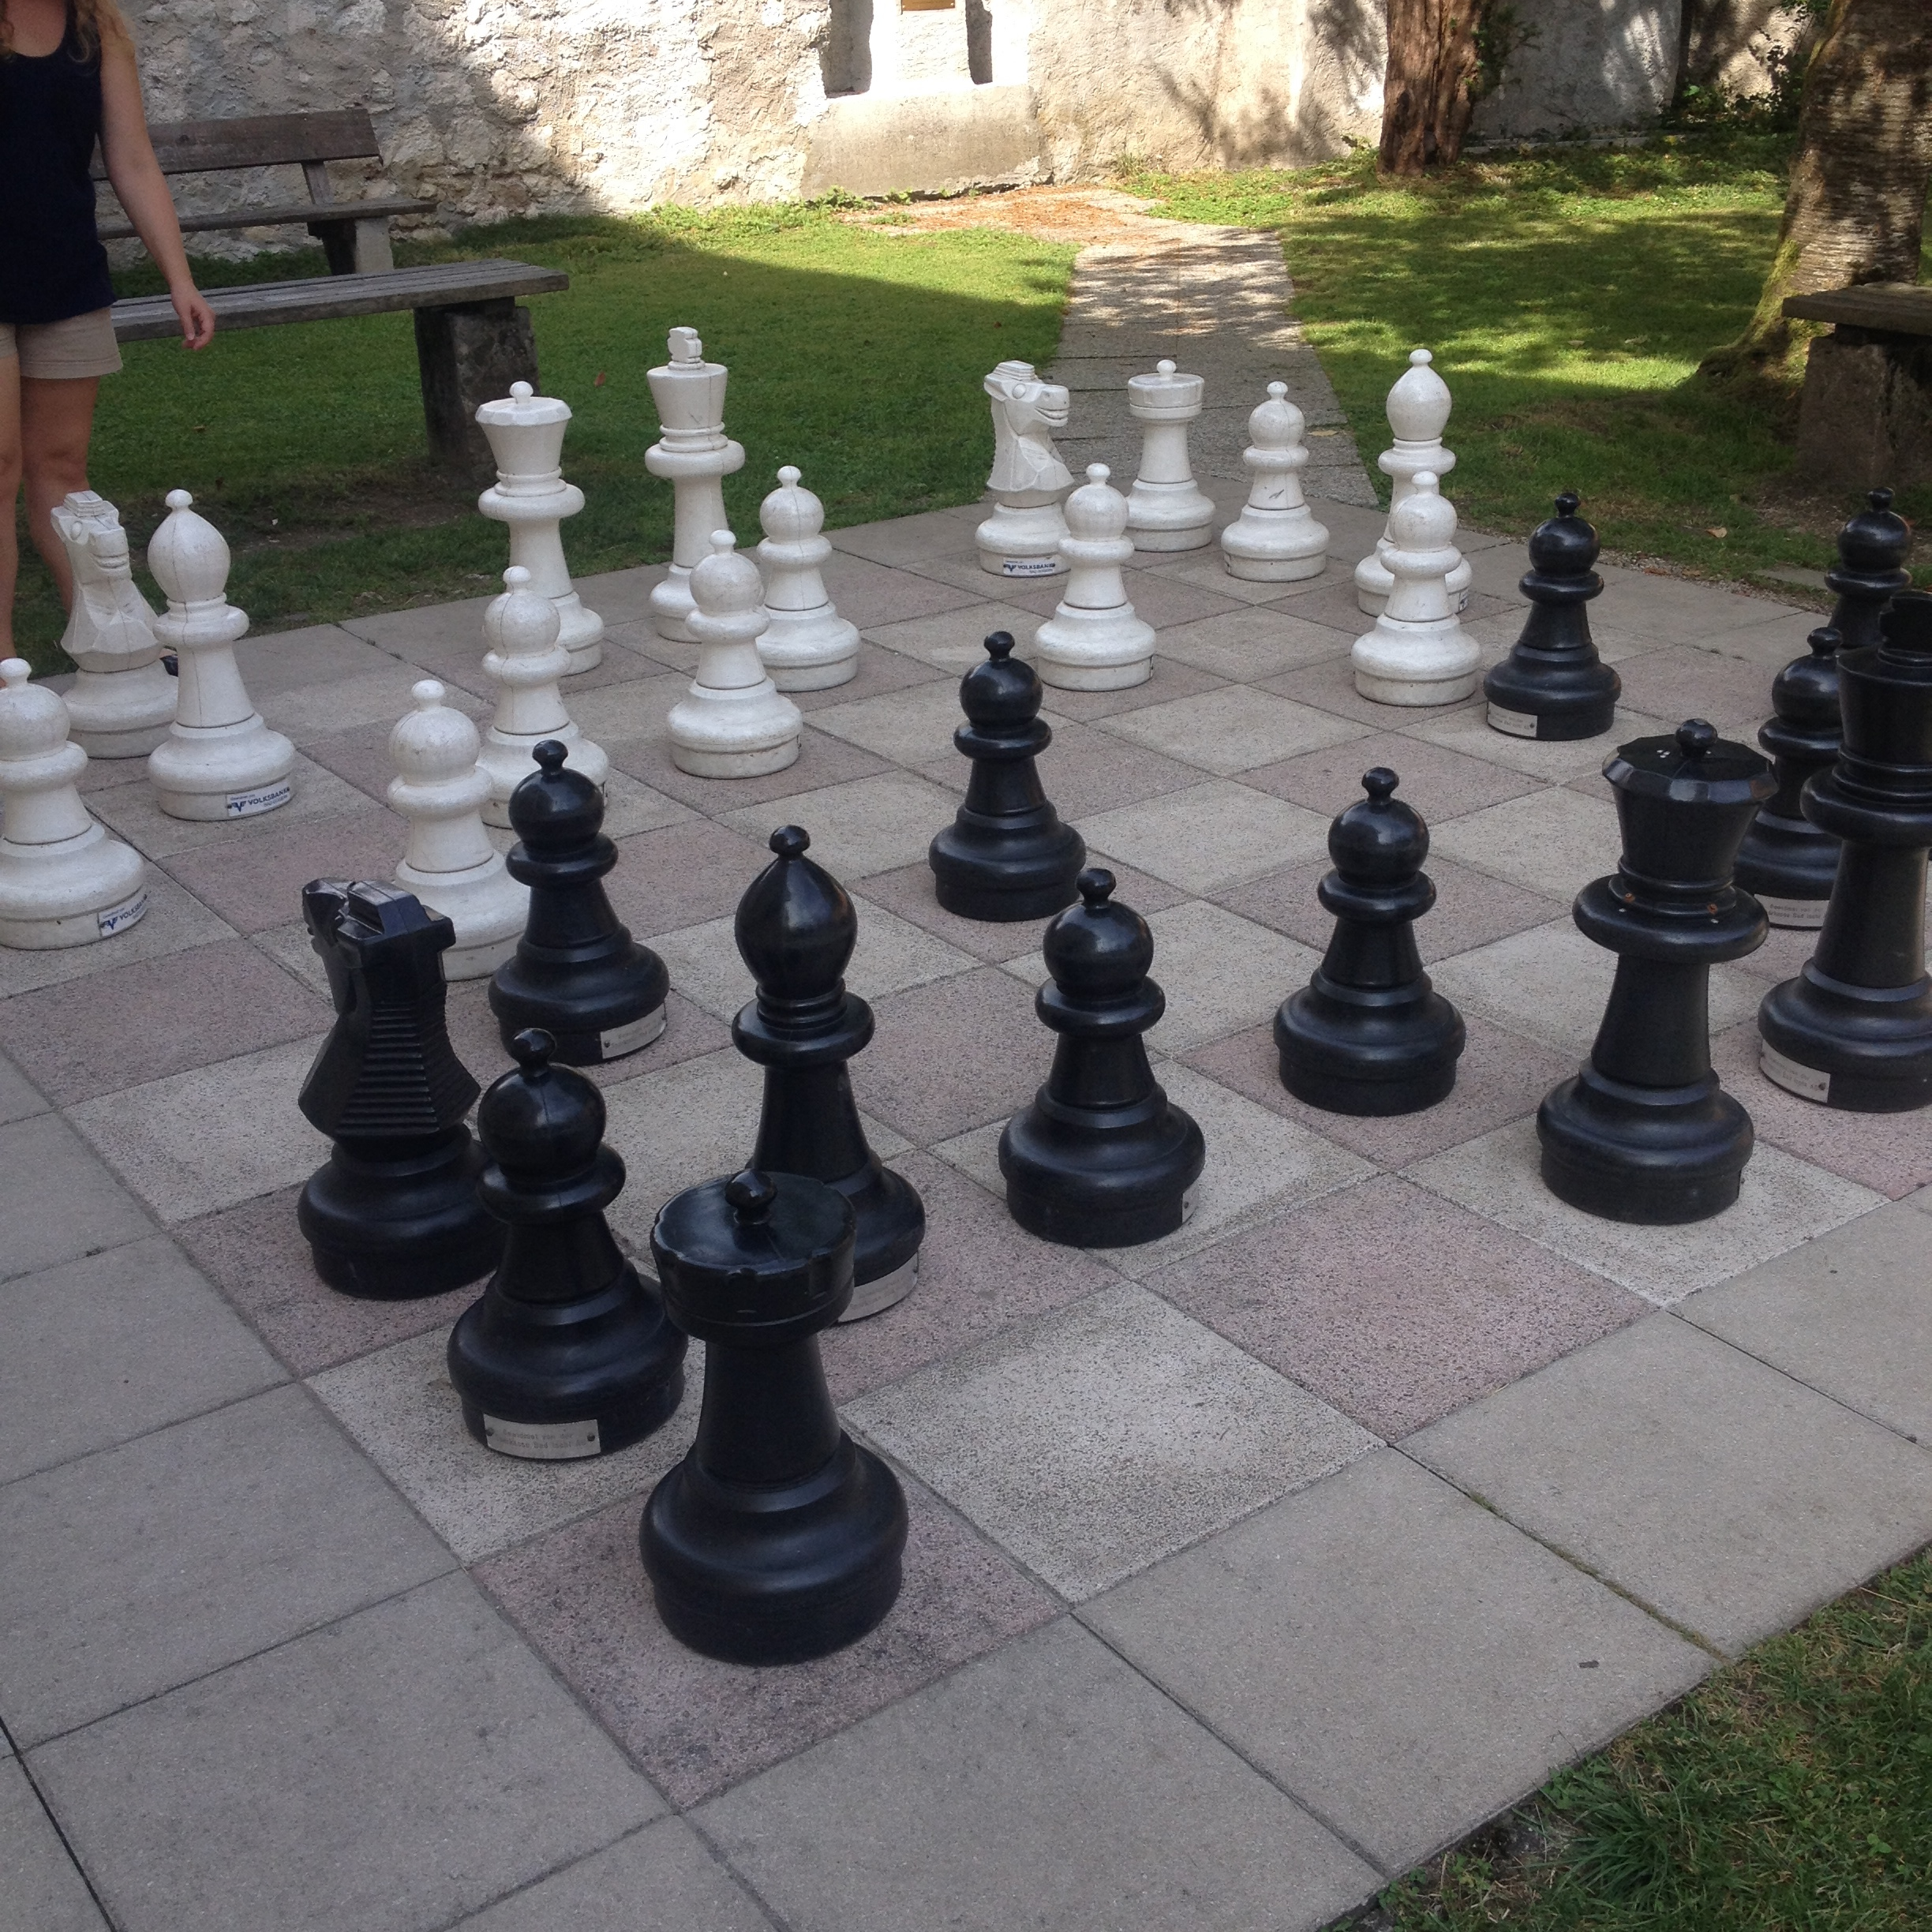 This giant chess set reminded us of Harry Potter.